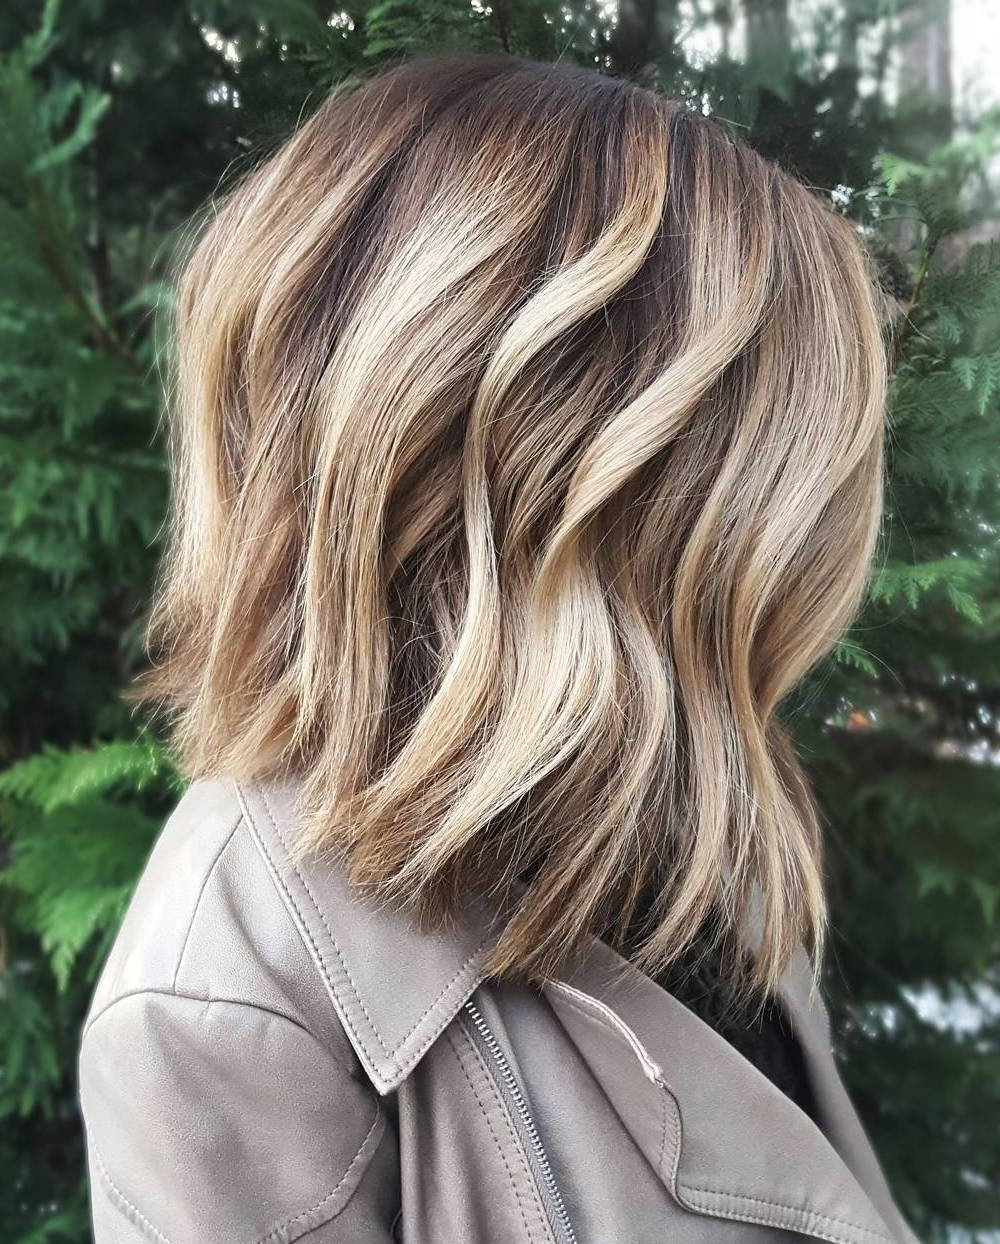 Blonde Hair Color Shades {Best Ideas For 2018} For Angelic Blonde Balayage Bob Hairstyles With Curls (View 16 of 25)